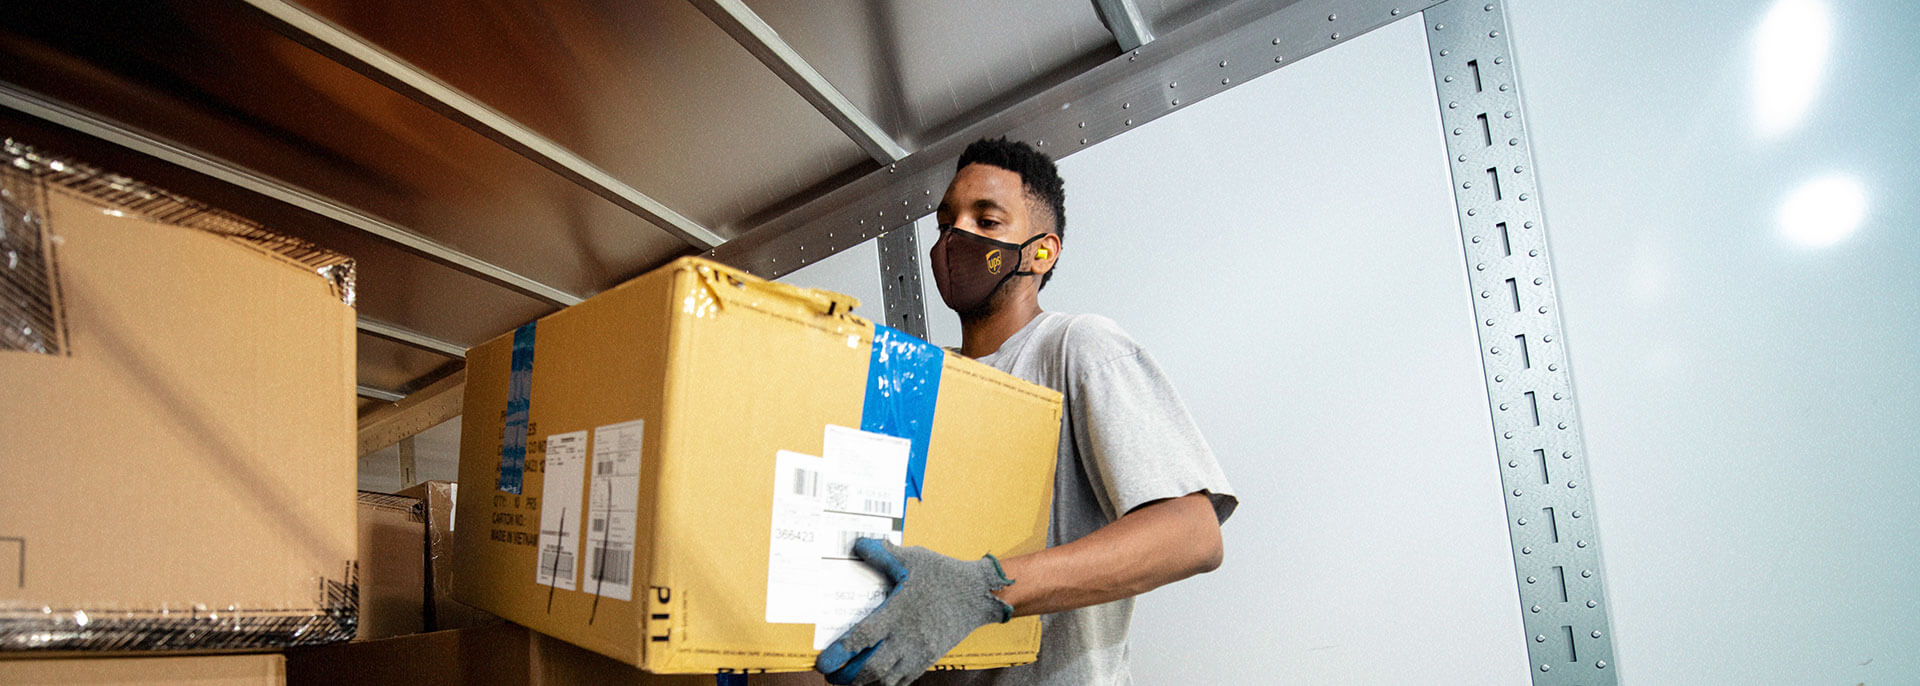 Package Handler